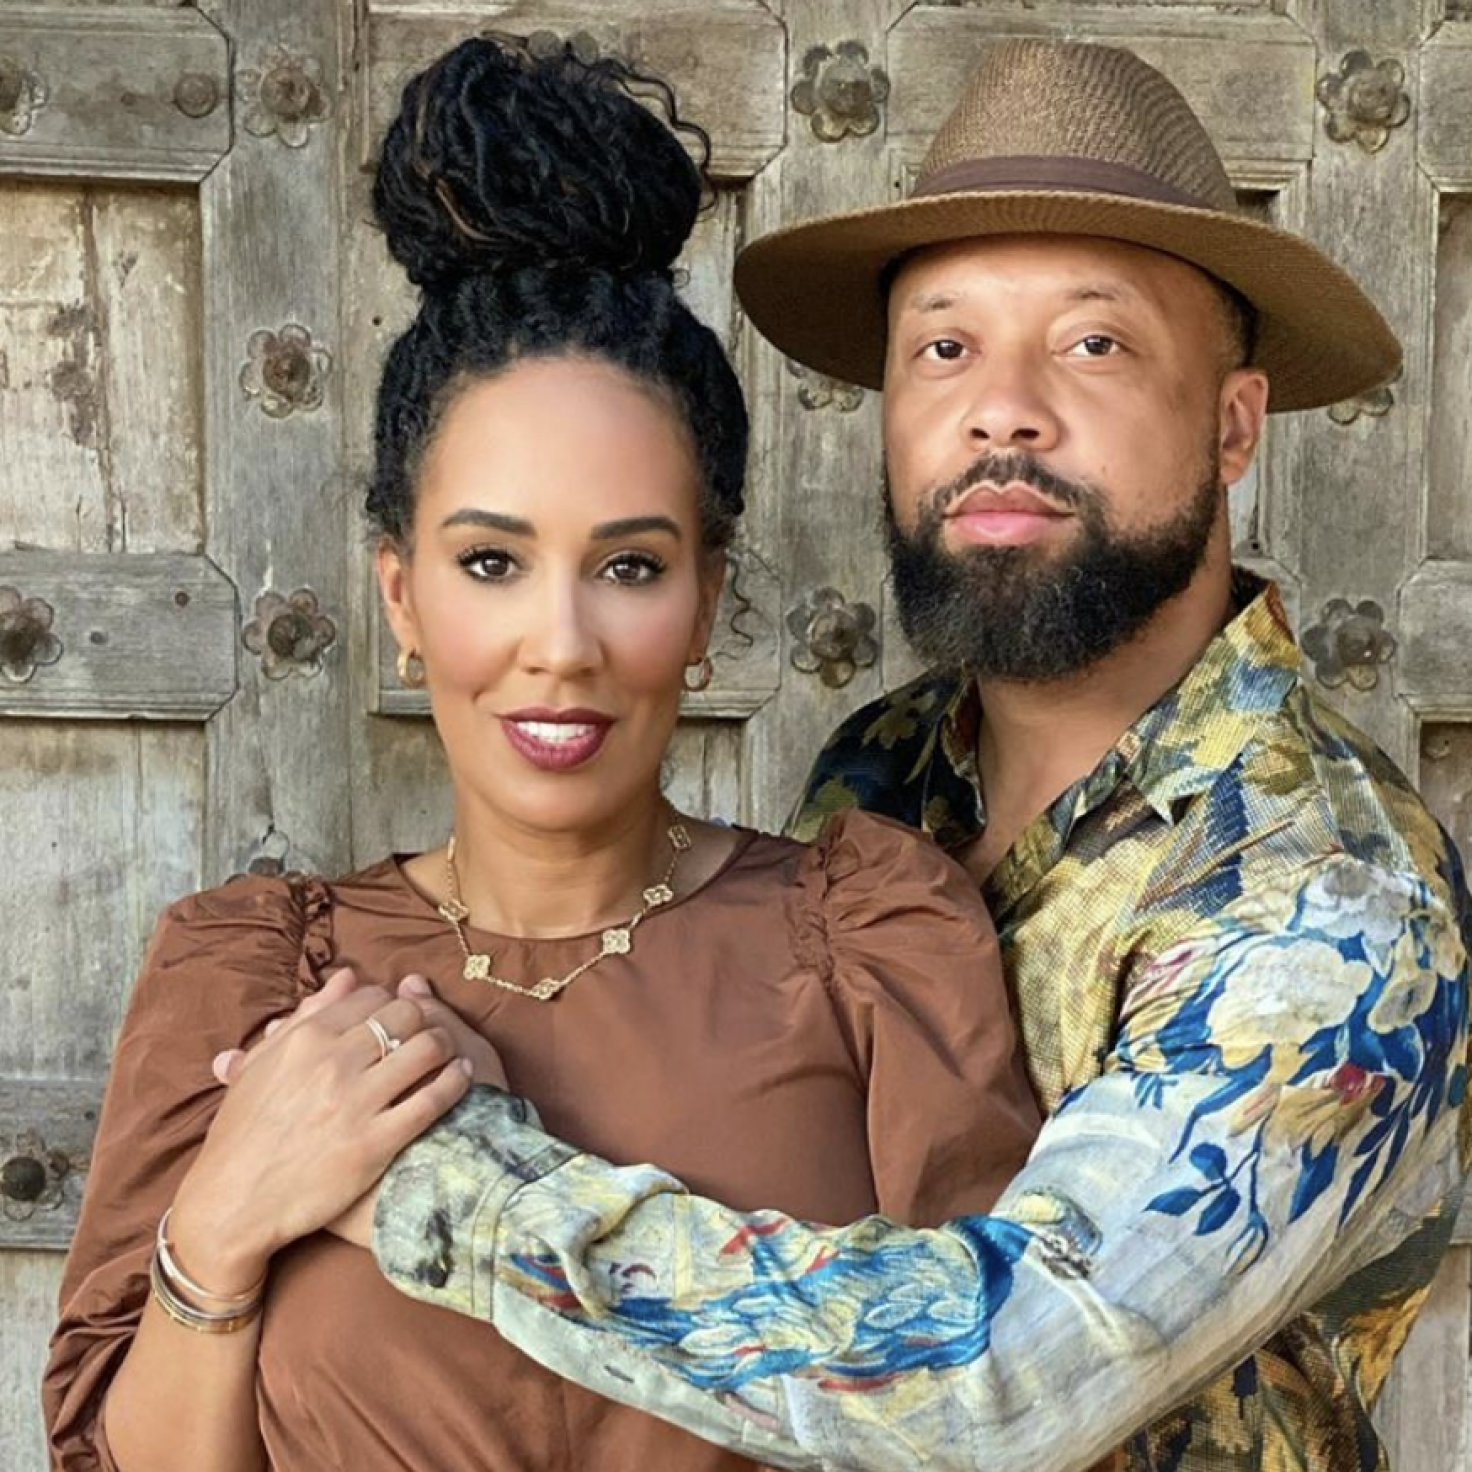 'Real Housewives Of Atlanta' Star Tanya Sam And Fiancé Paul Judge Get Wild On Their African Safari